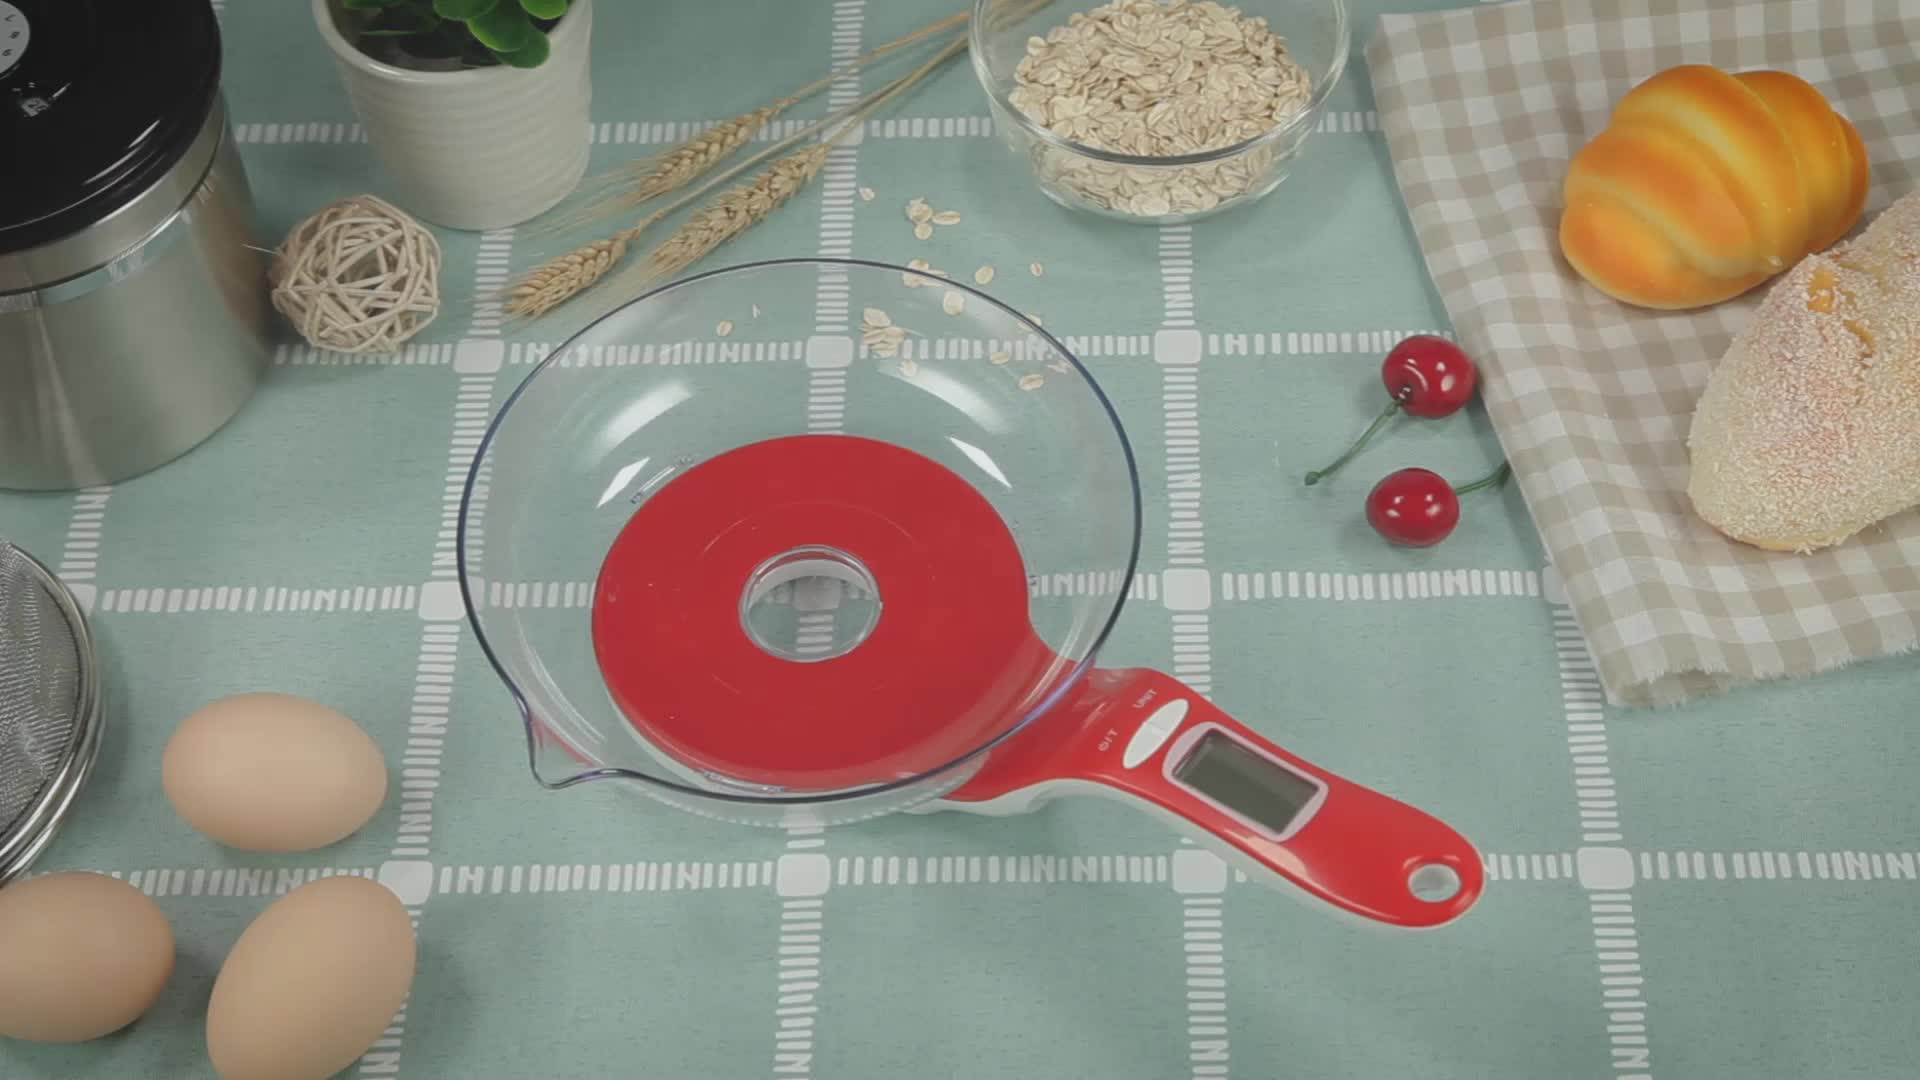 Taiza Manual household electronic weight smart food weighing digital kitchen scale